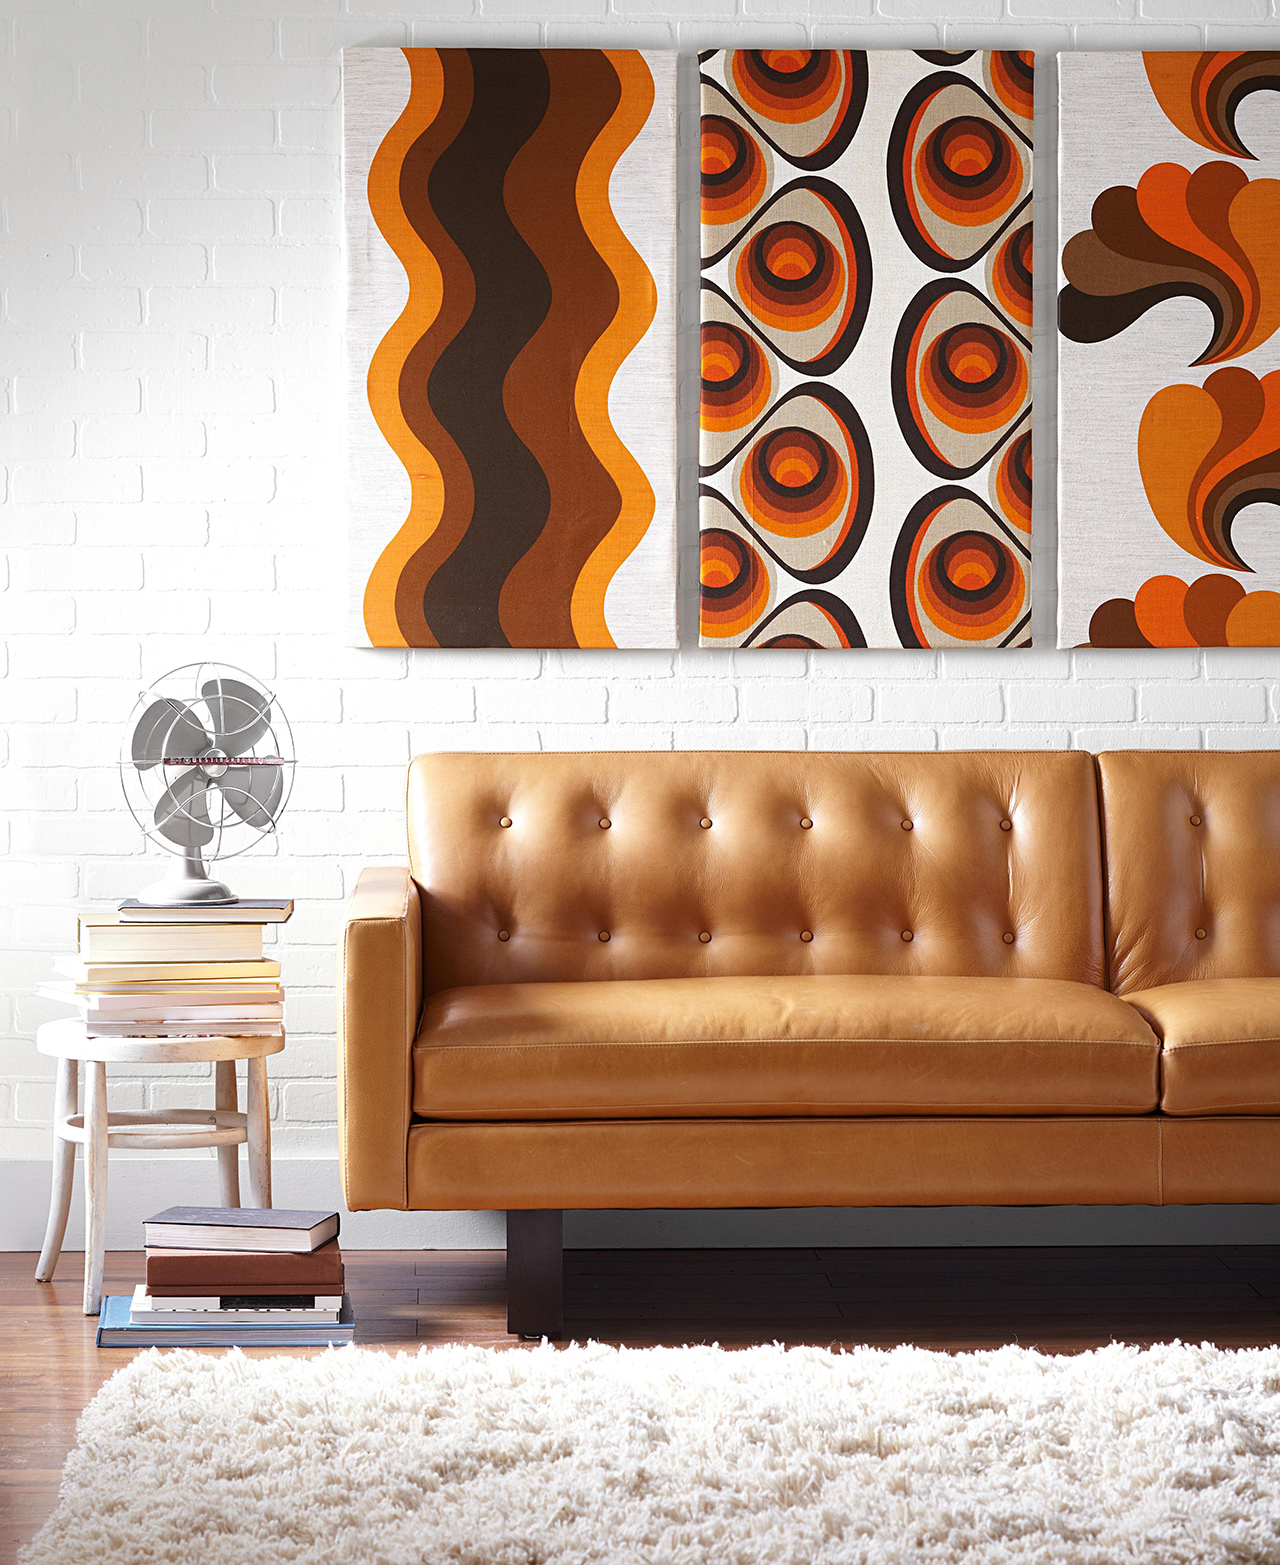 seventies-style print orange couch